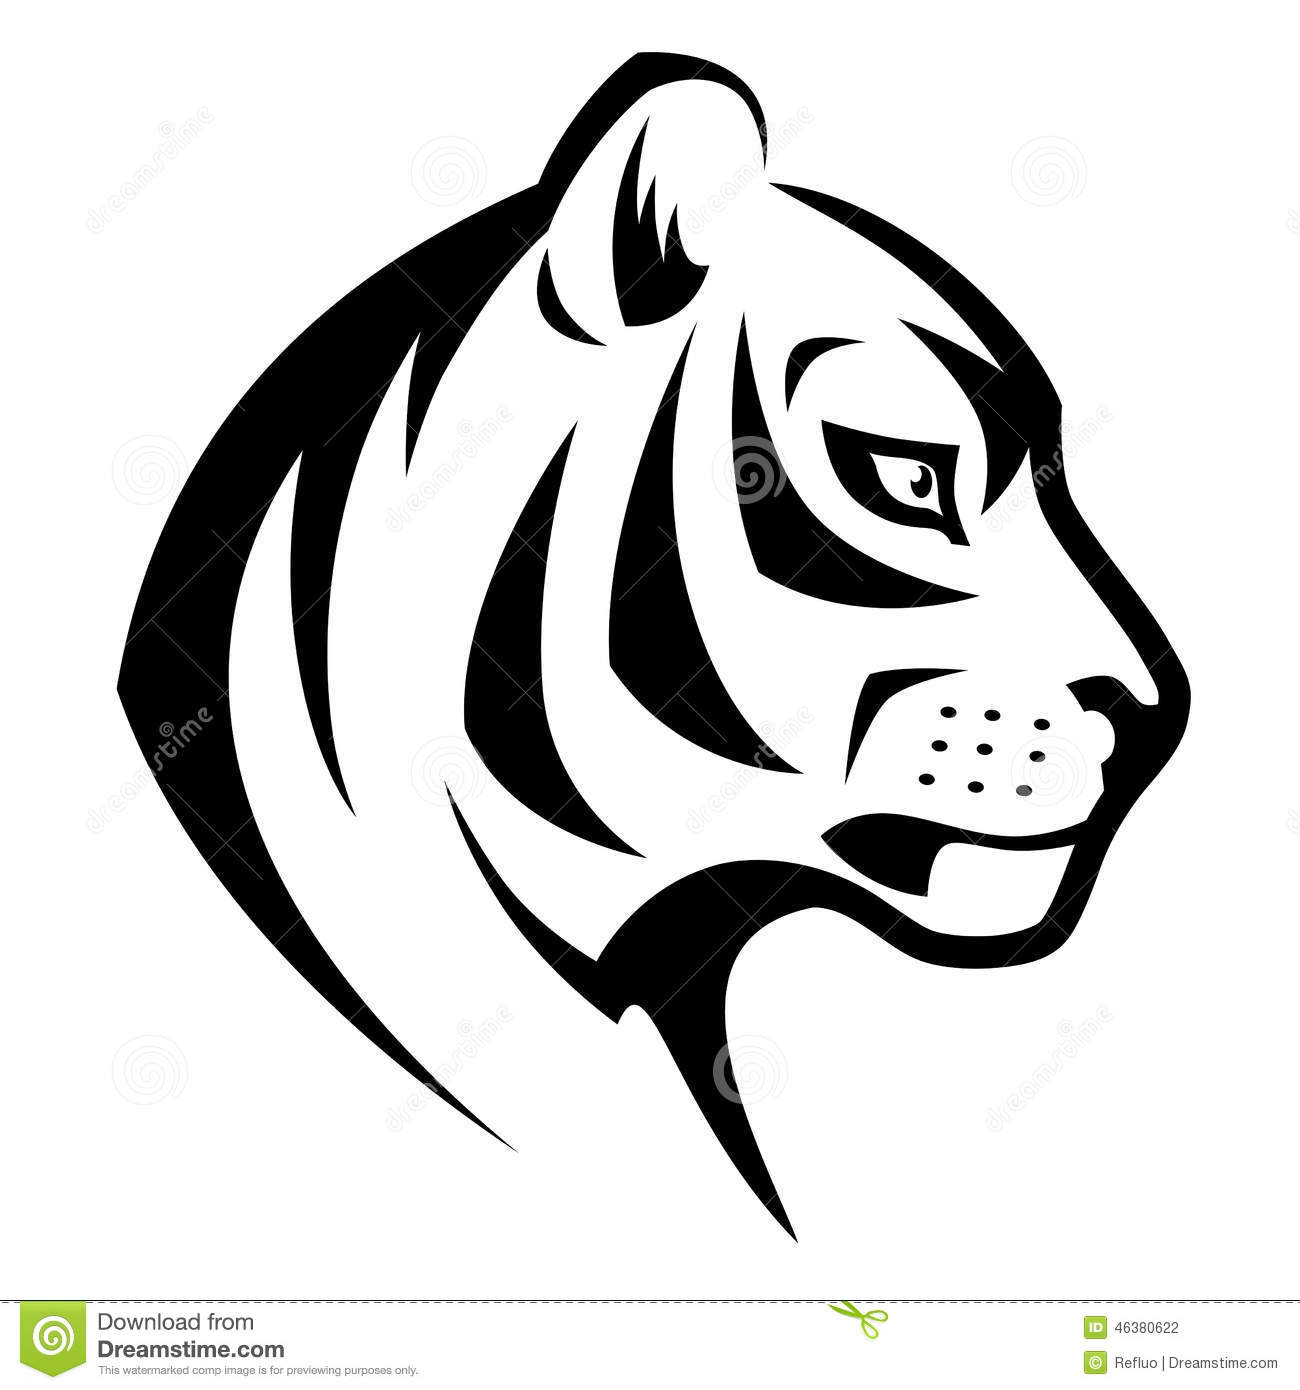 Stylized head of serious tiger isolated on white background.